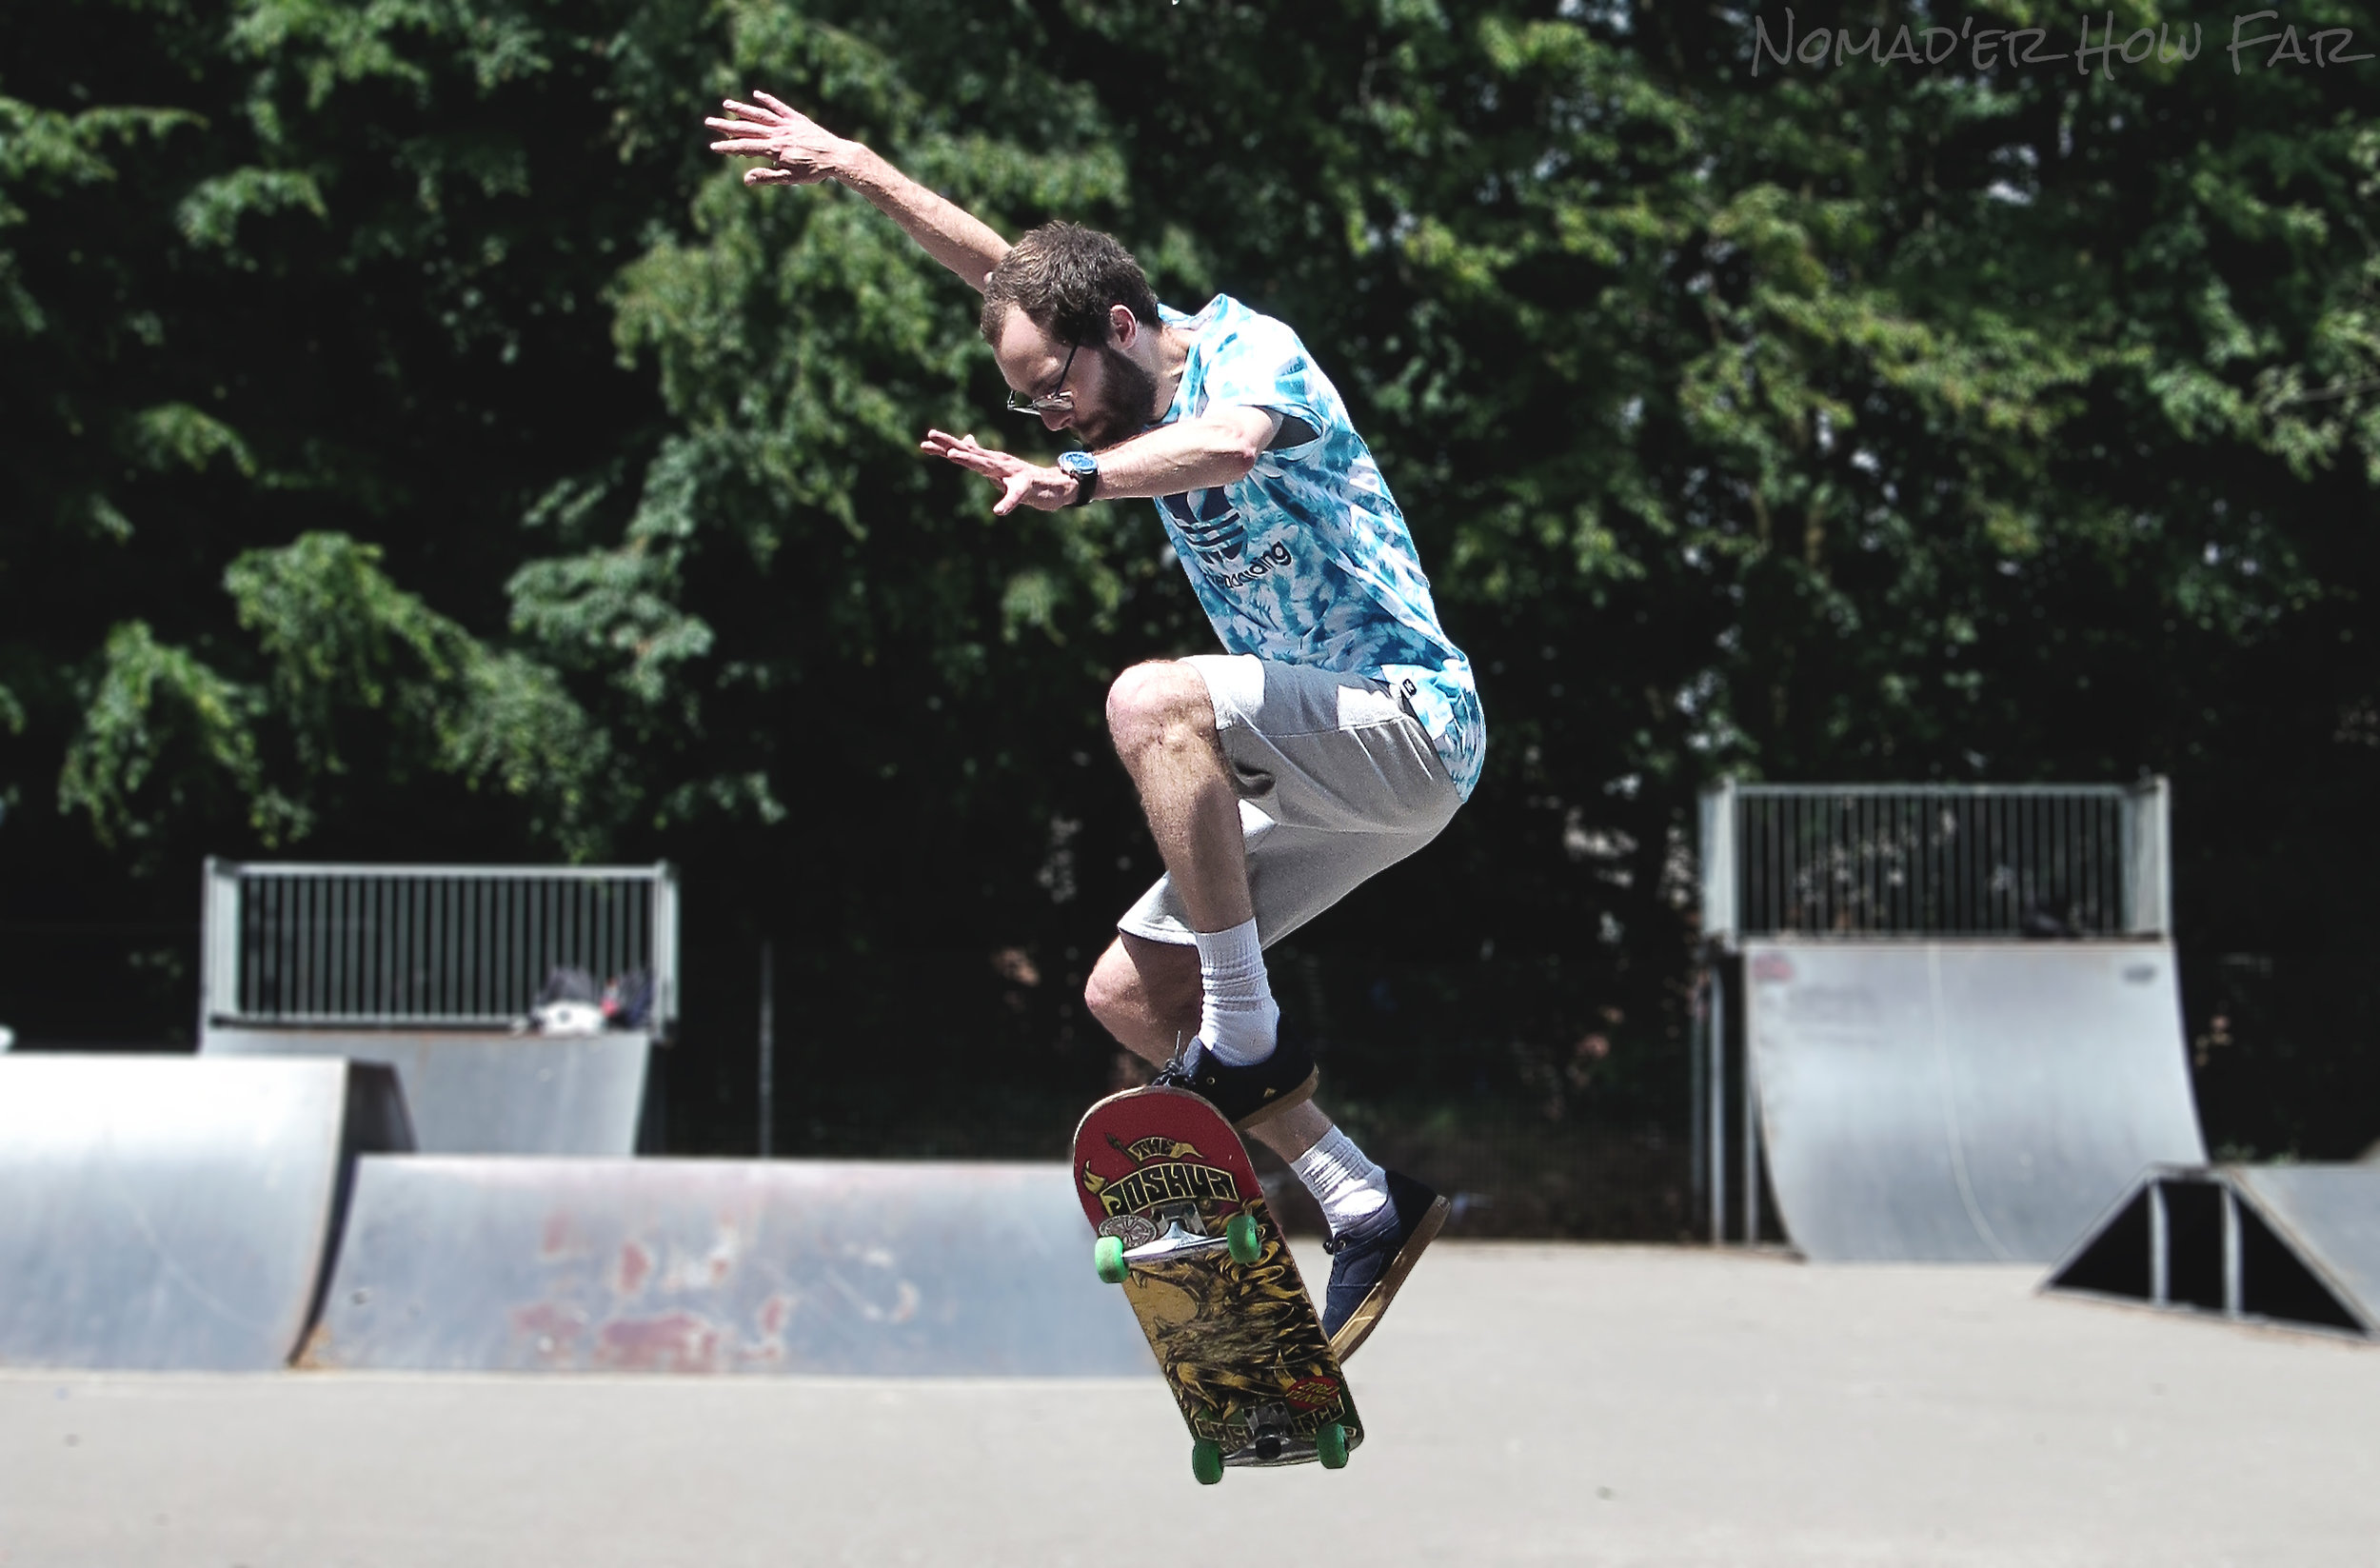 Gettin' some air! - Hythe, UK